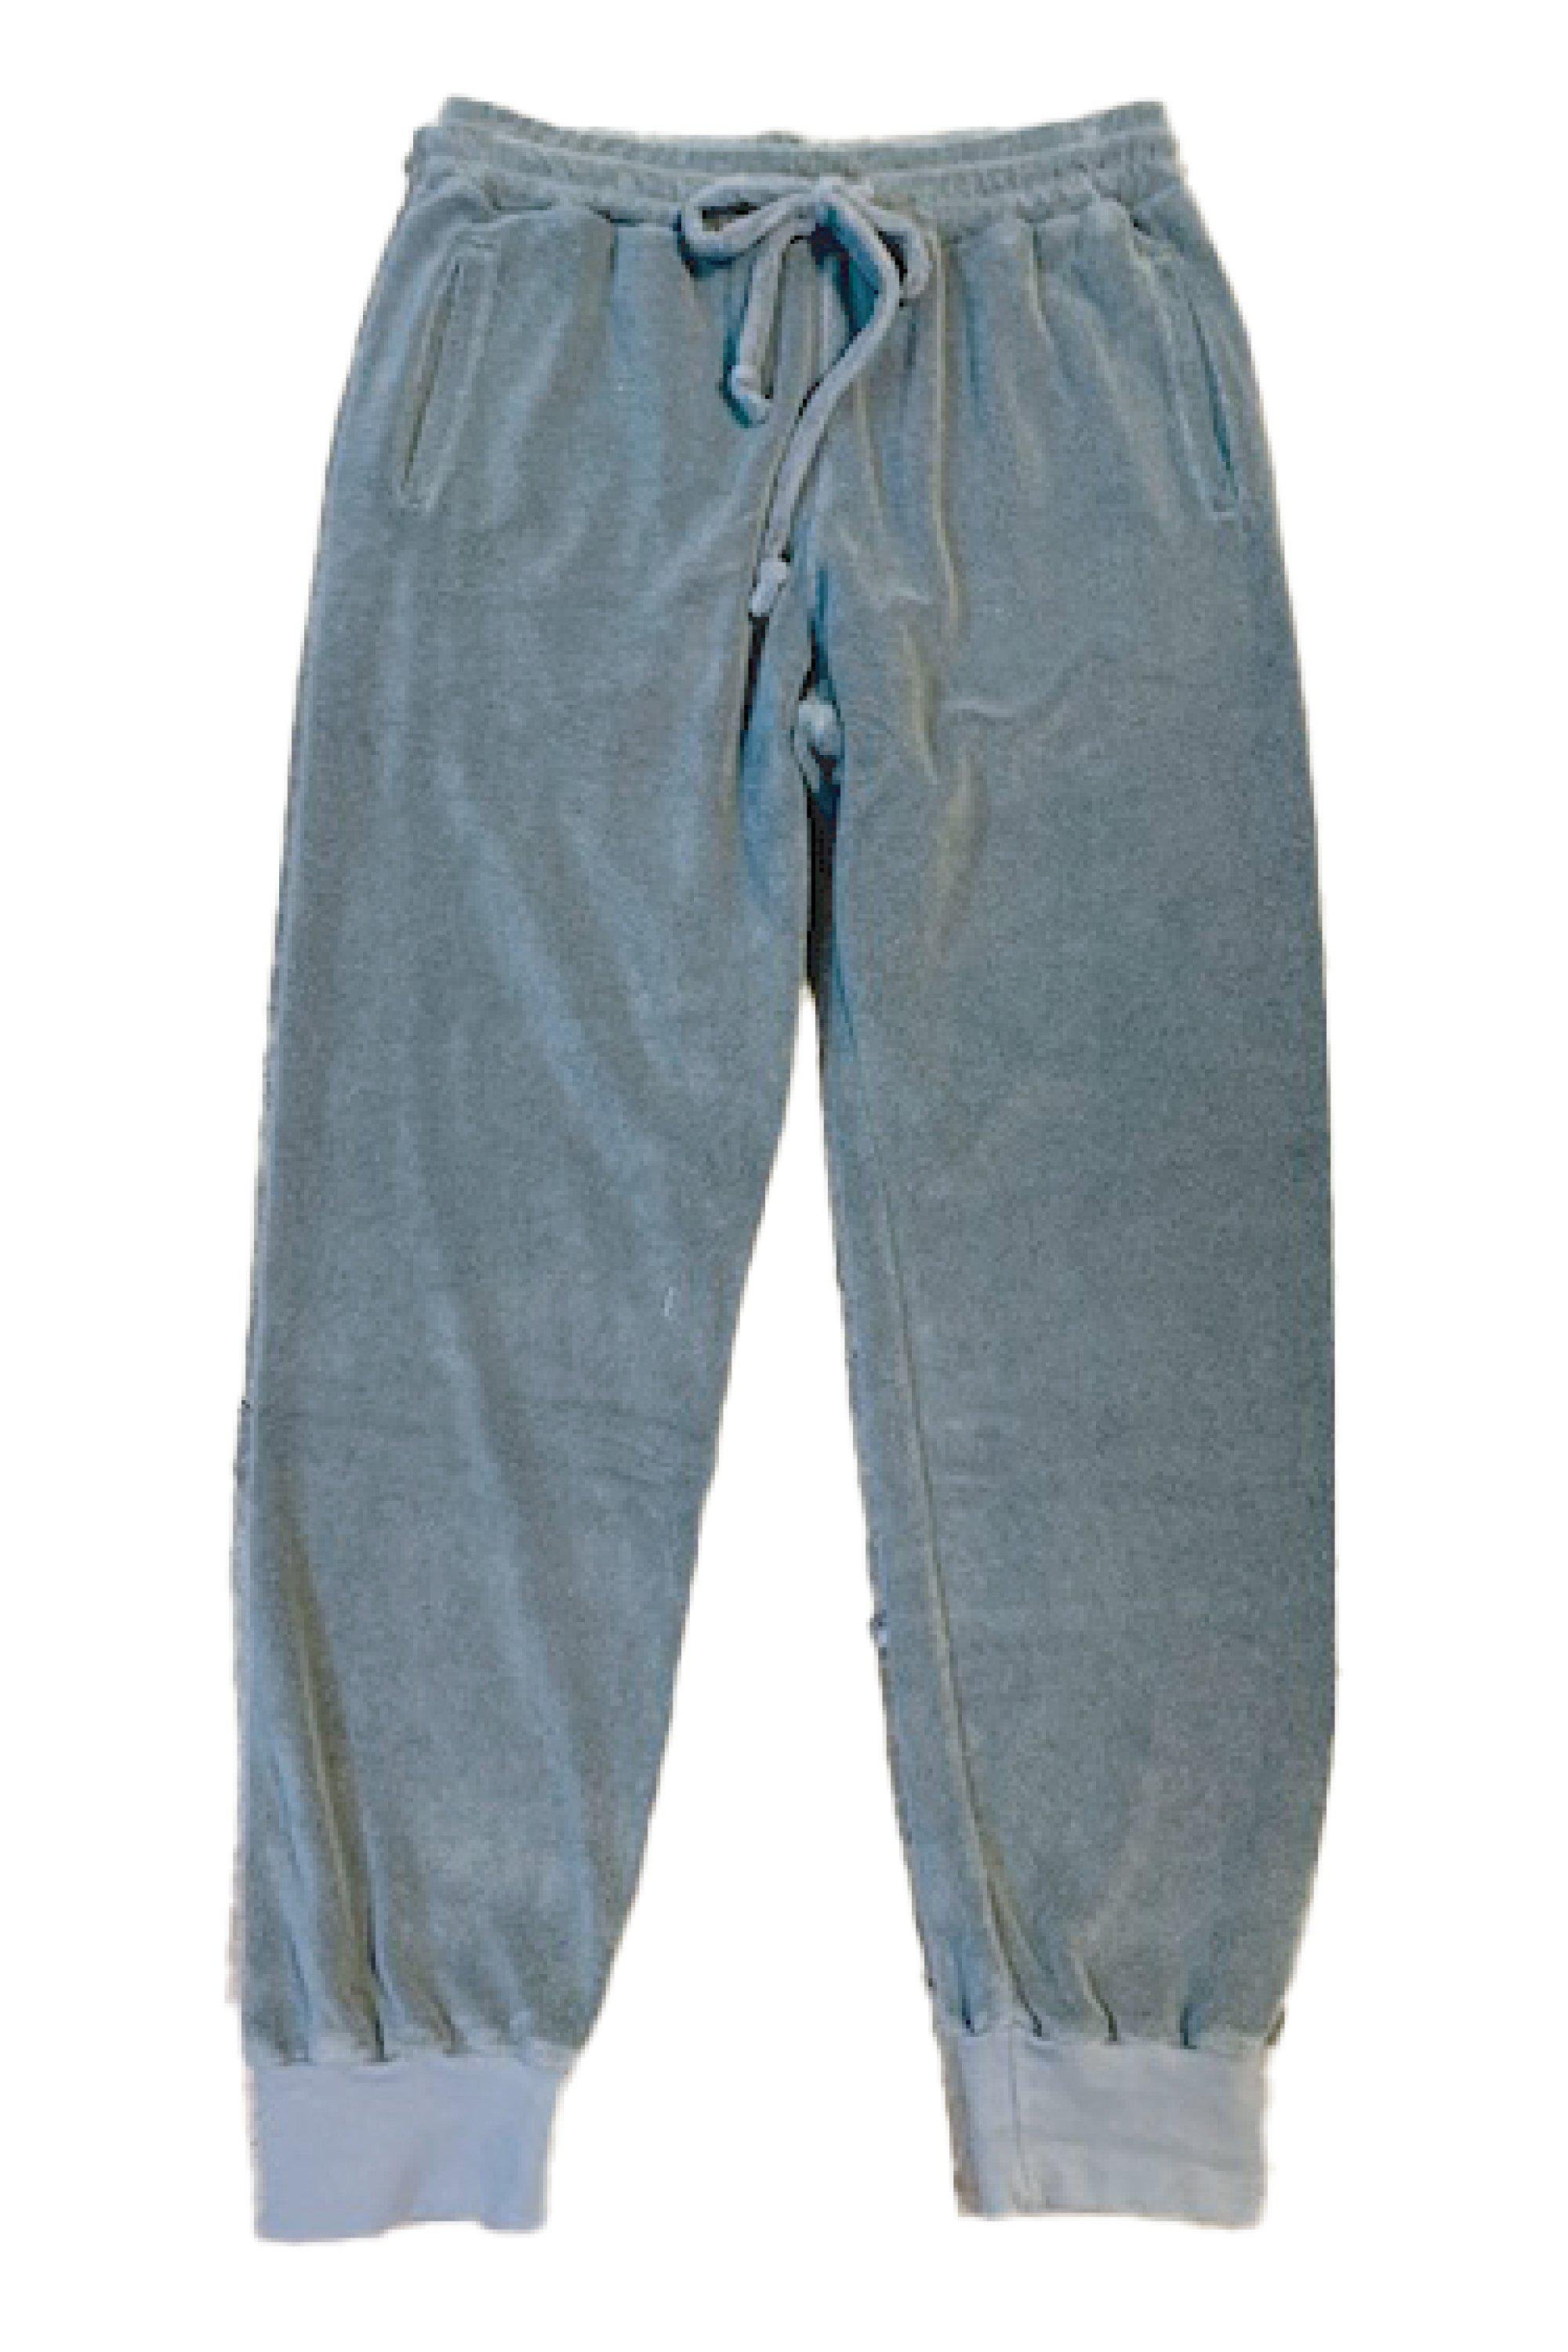 TERRYCLOTH YOUTH MILLIE SWEATS